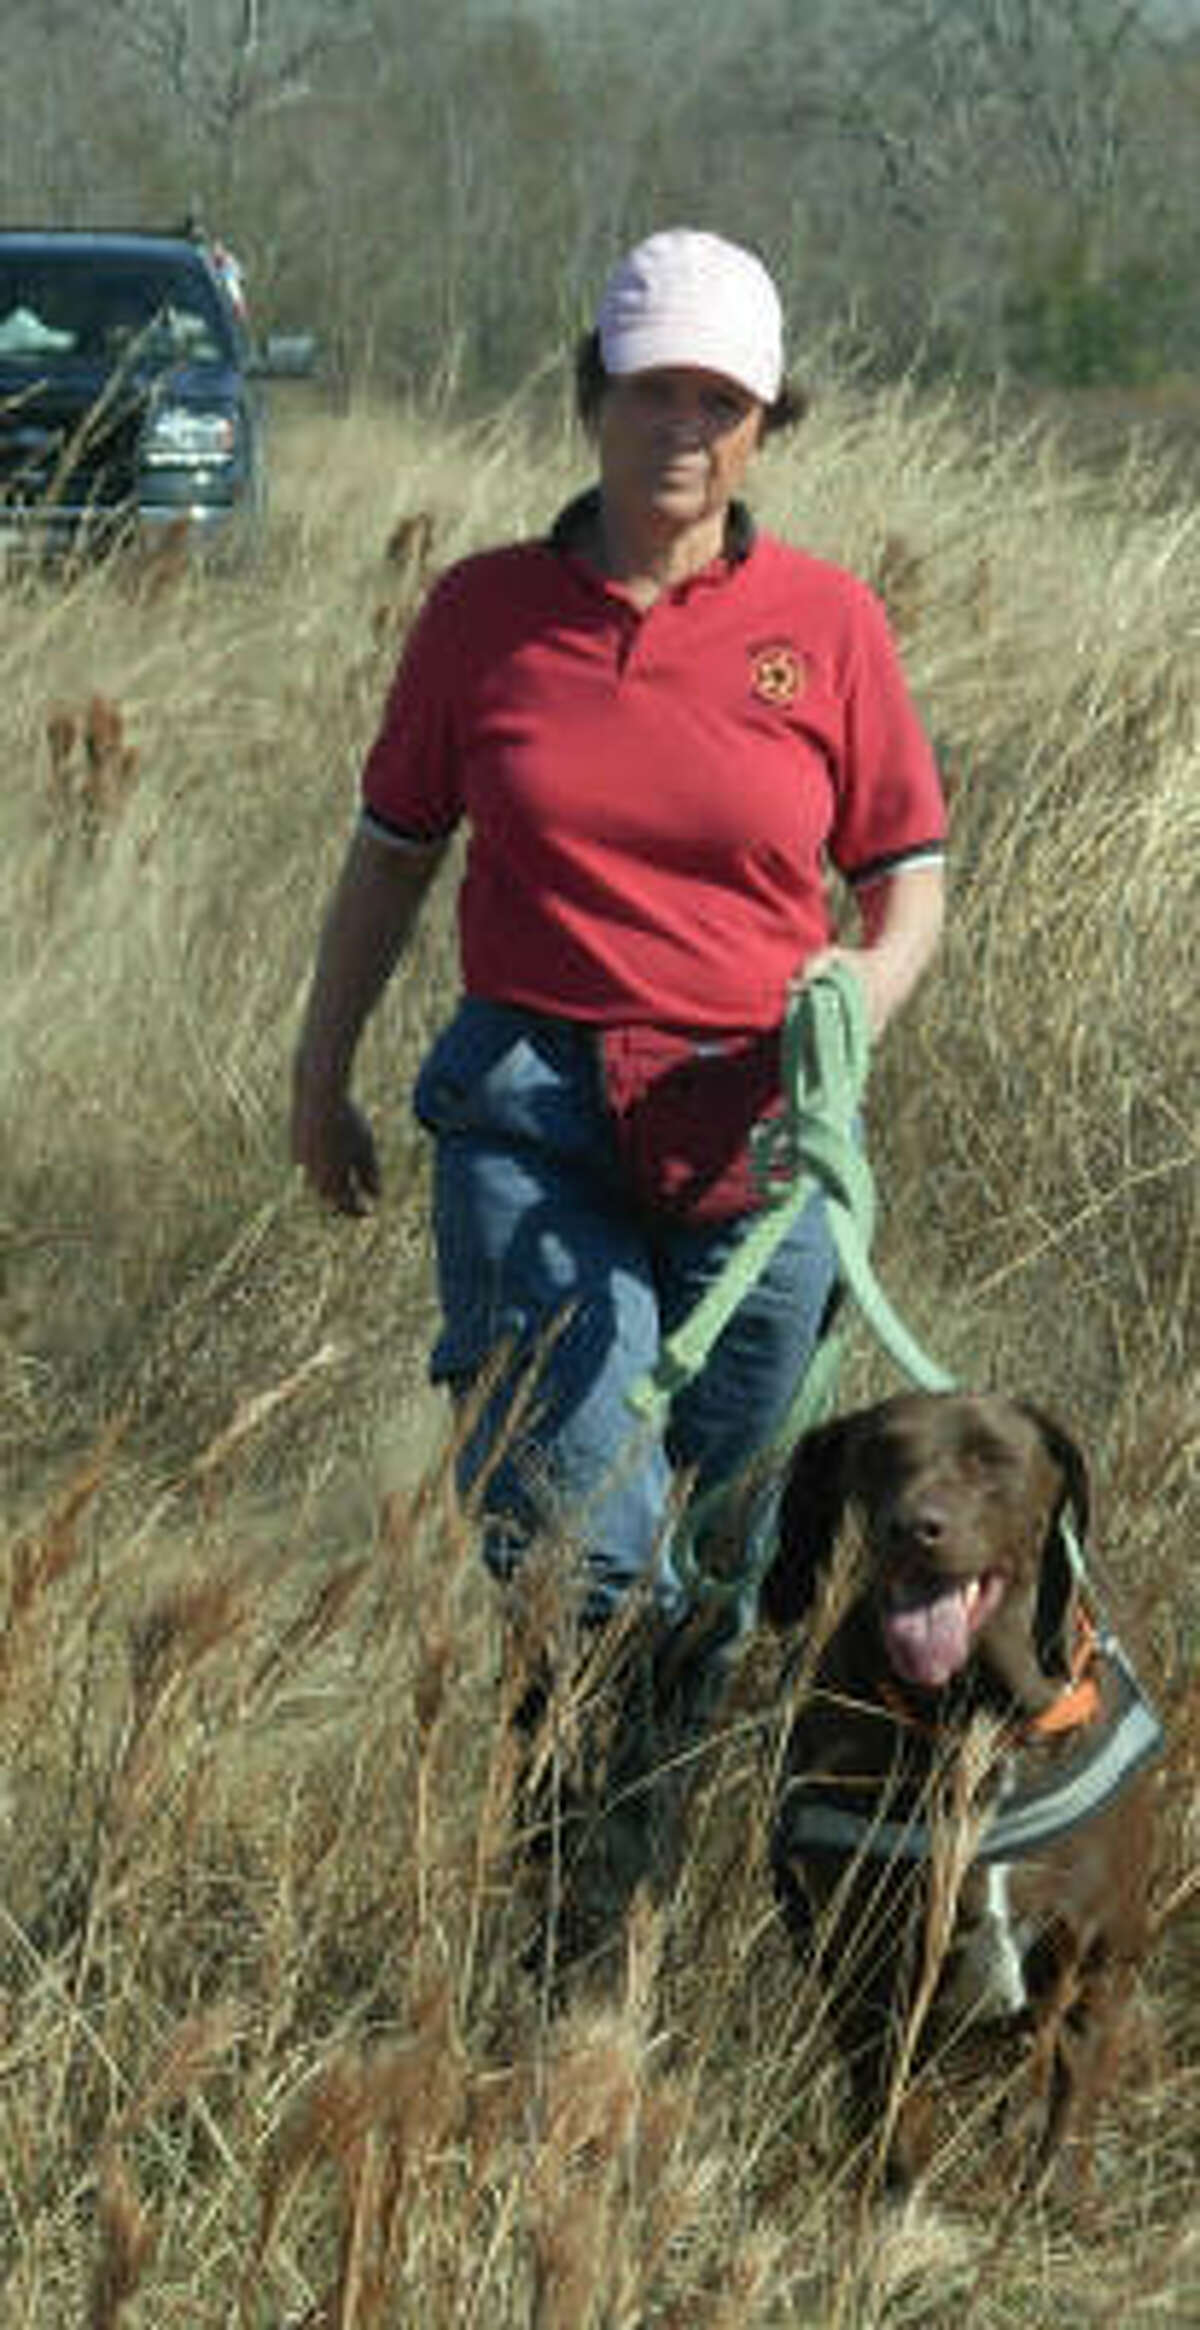 Karin TarQwyn is one of the few licensed private detectives in the country who specializes in finding lost dogs.